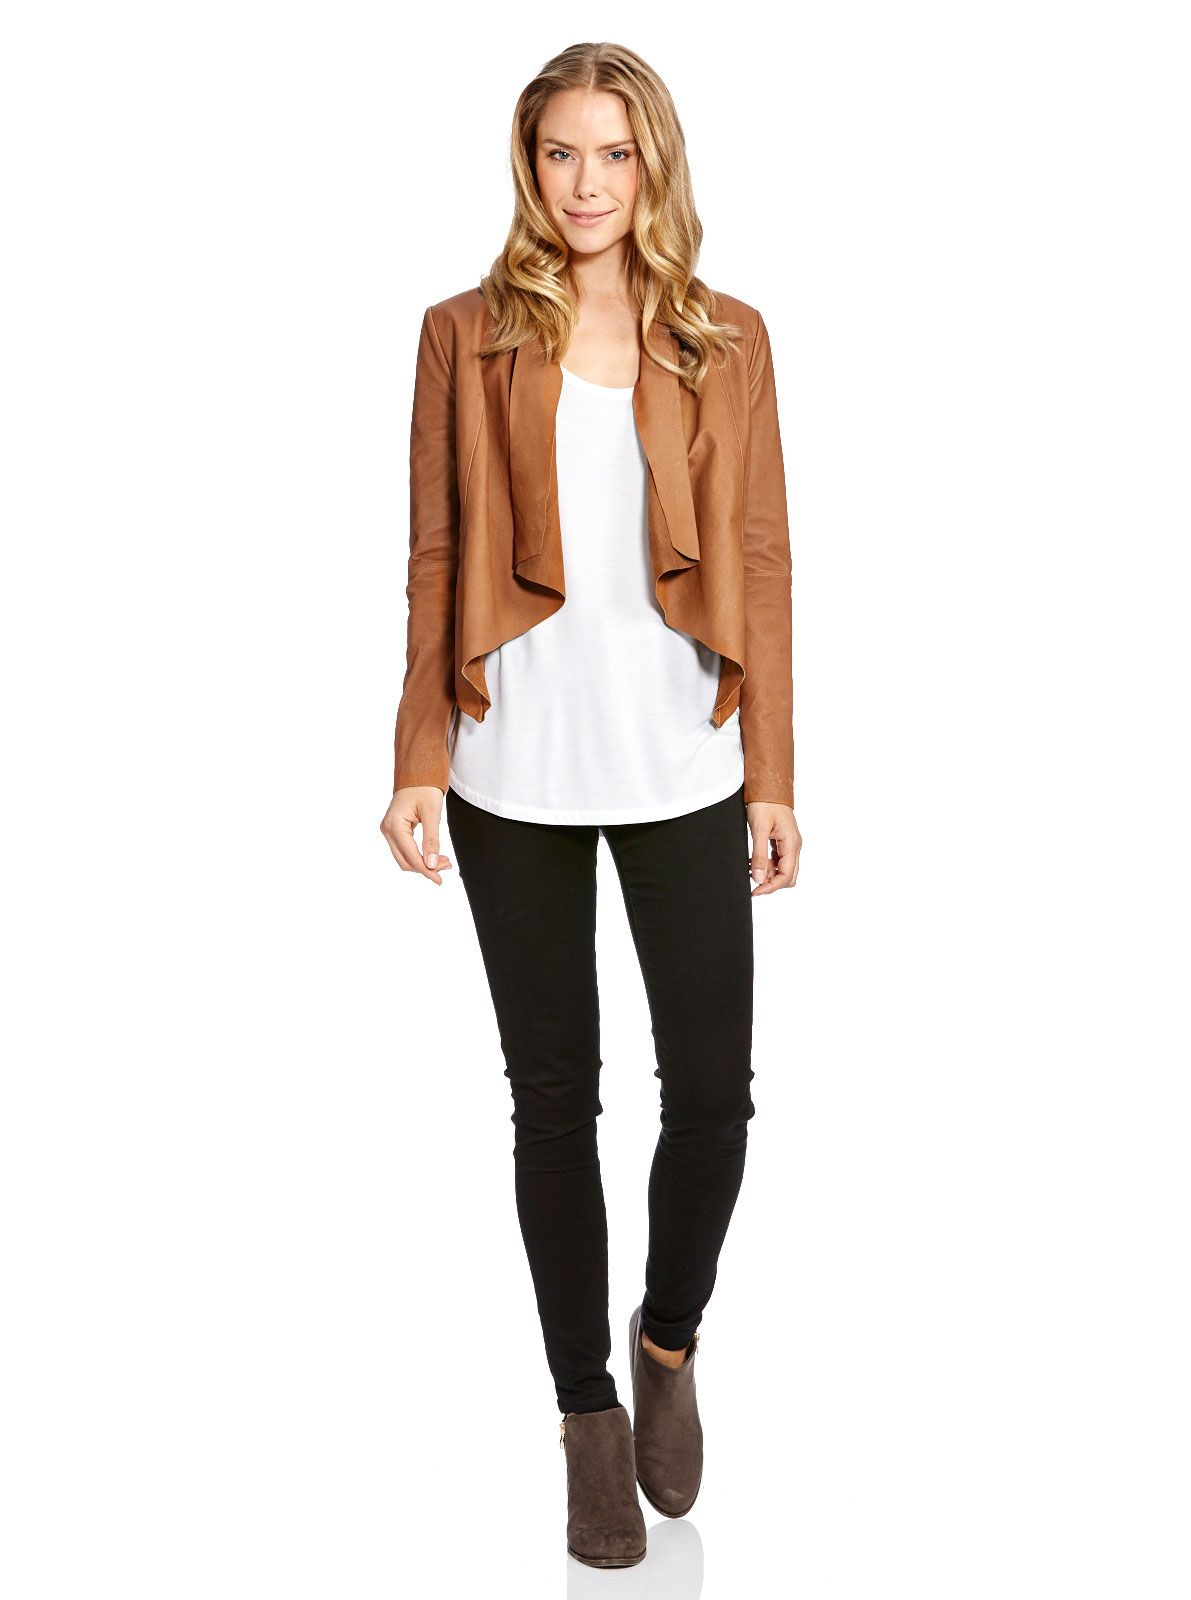 34edda863d4 Image for Waterfall Leather Jacket from Just Jeans